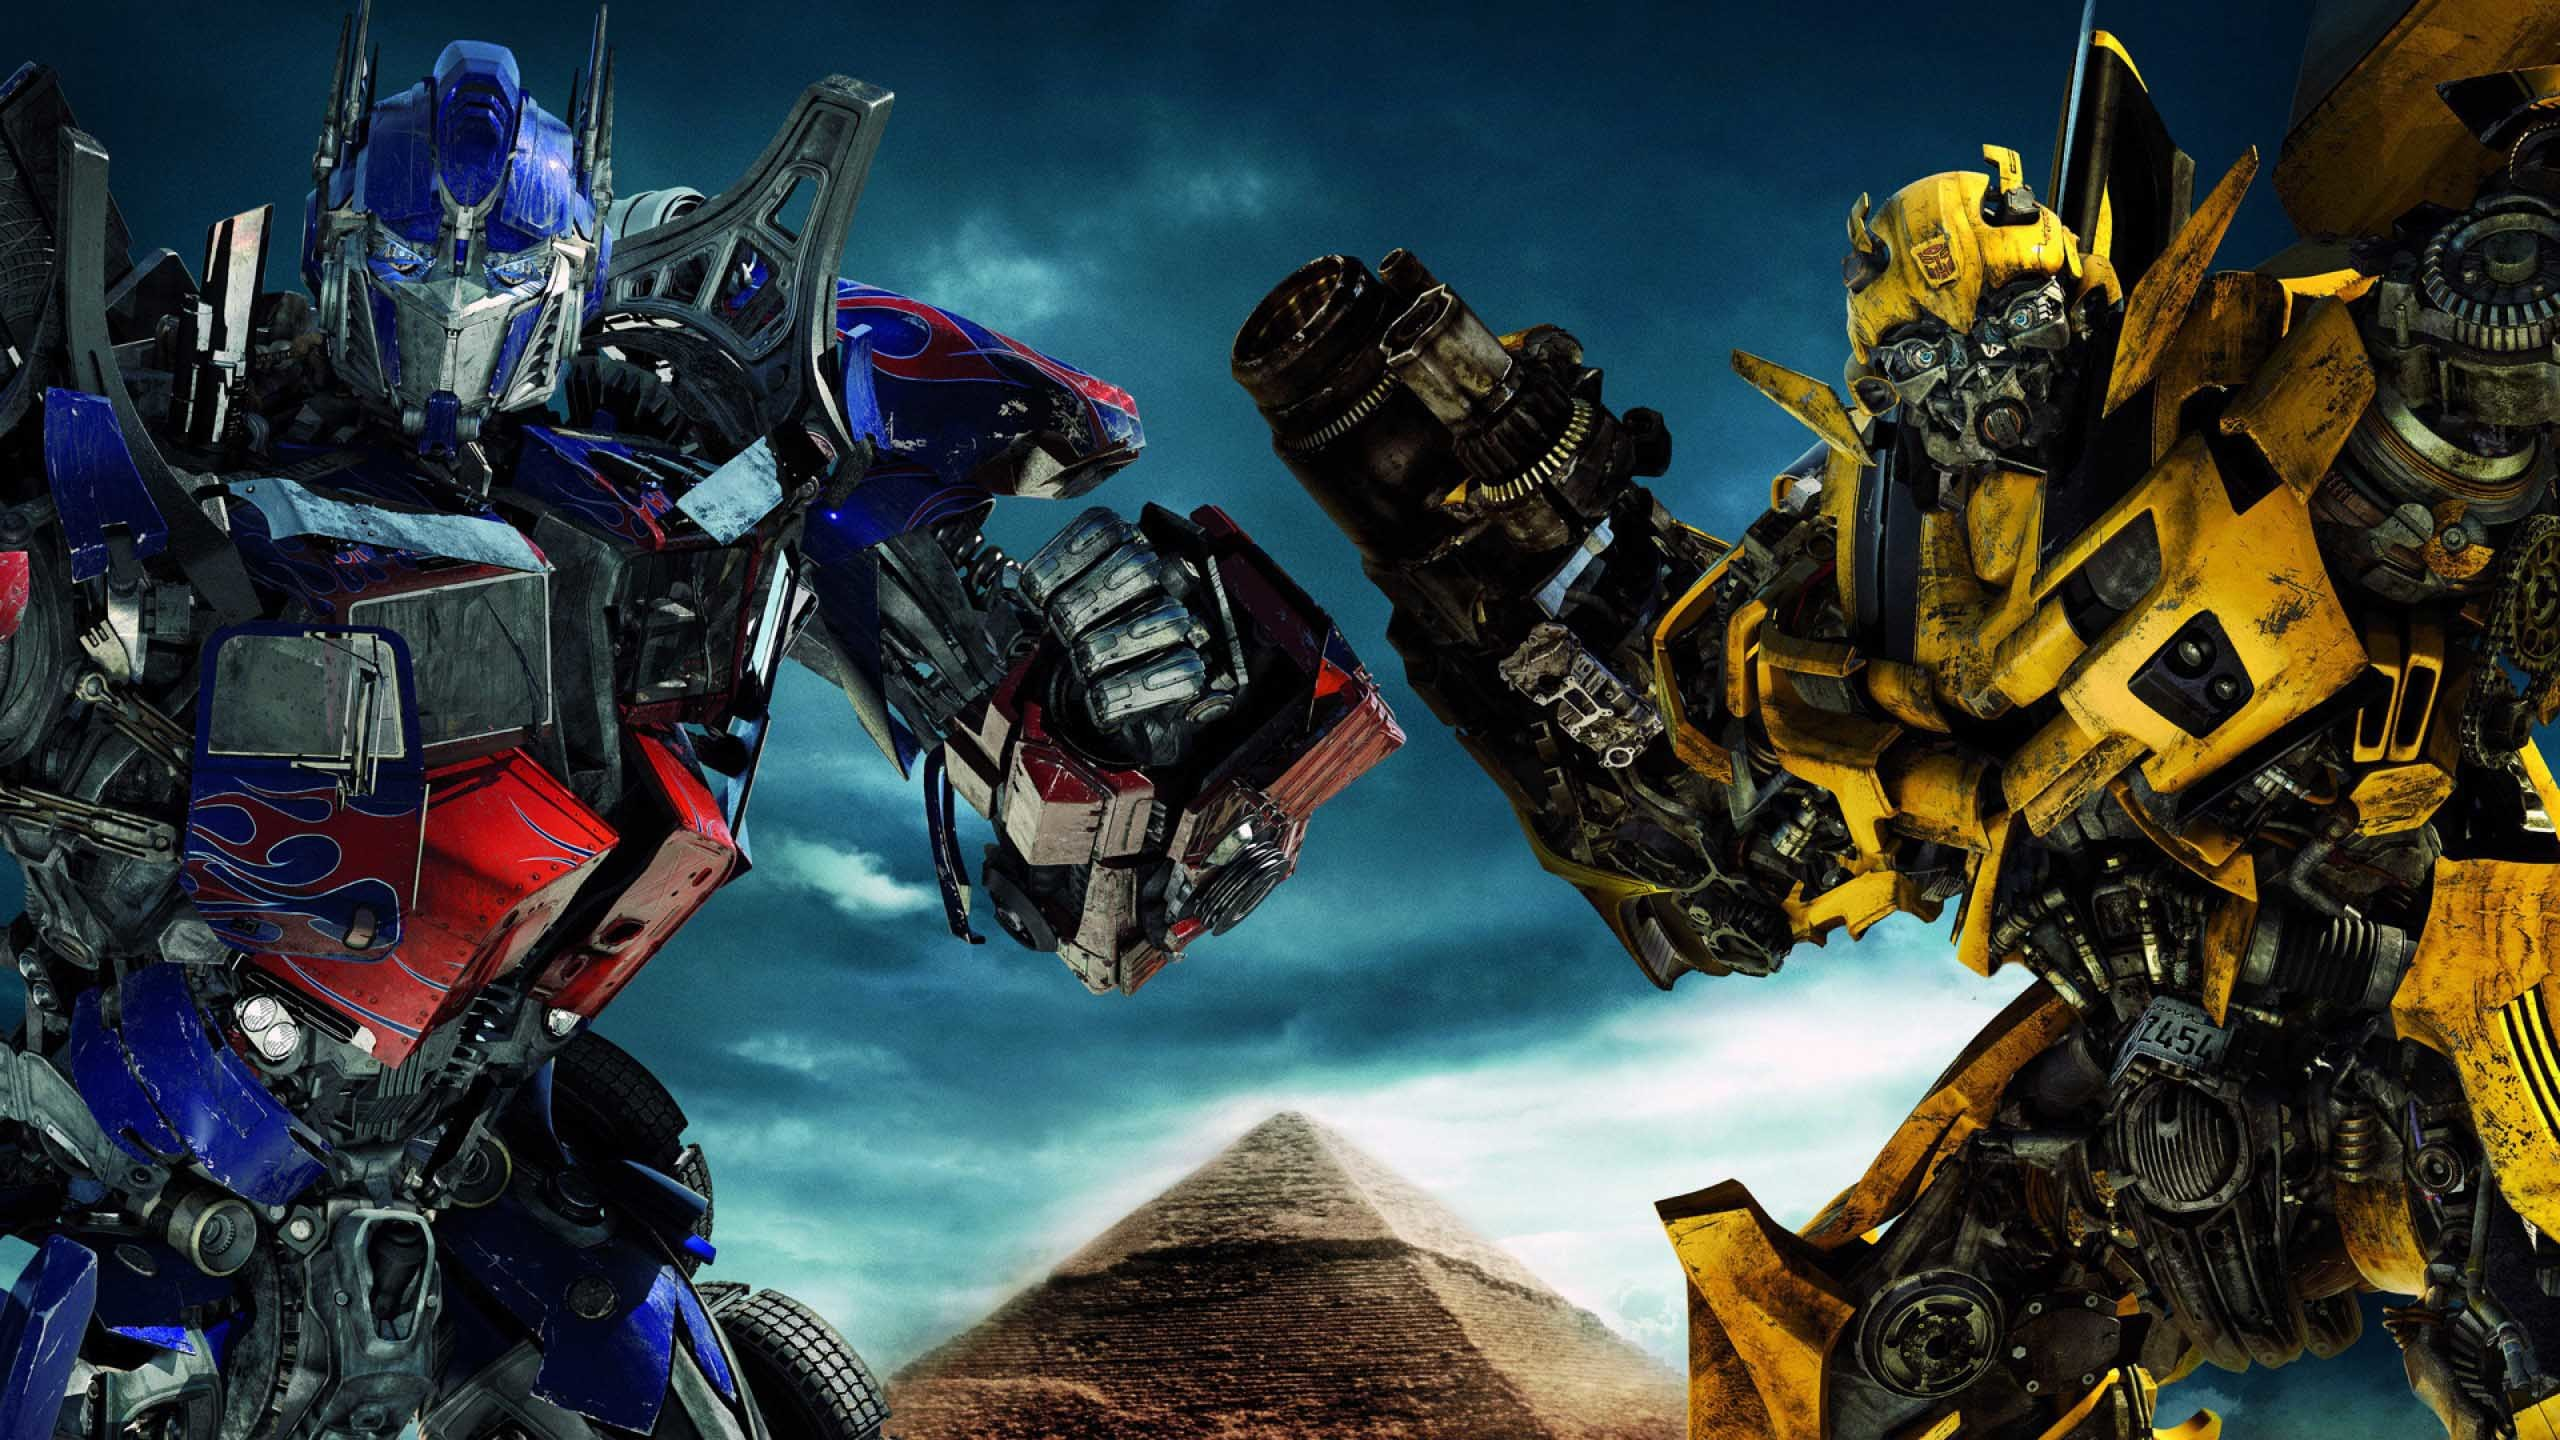 Transformers Bumblebee Wallpapers 65 Background Pictures